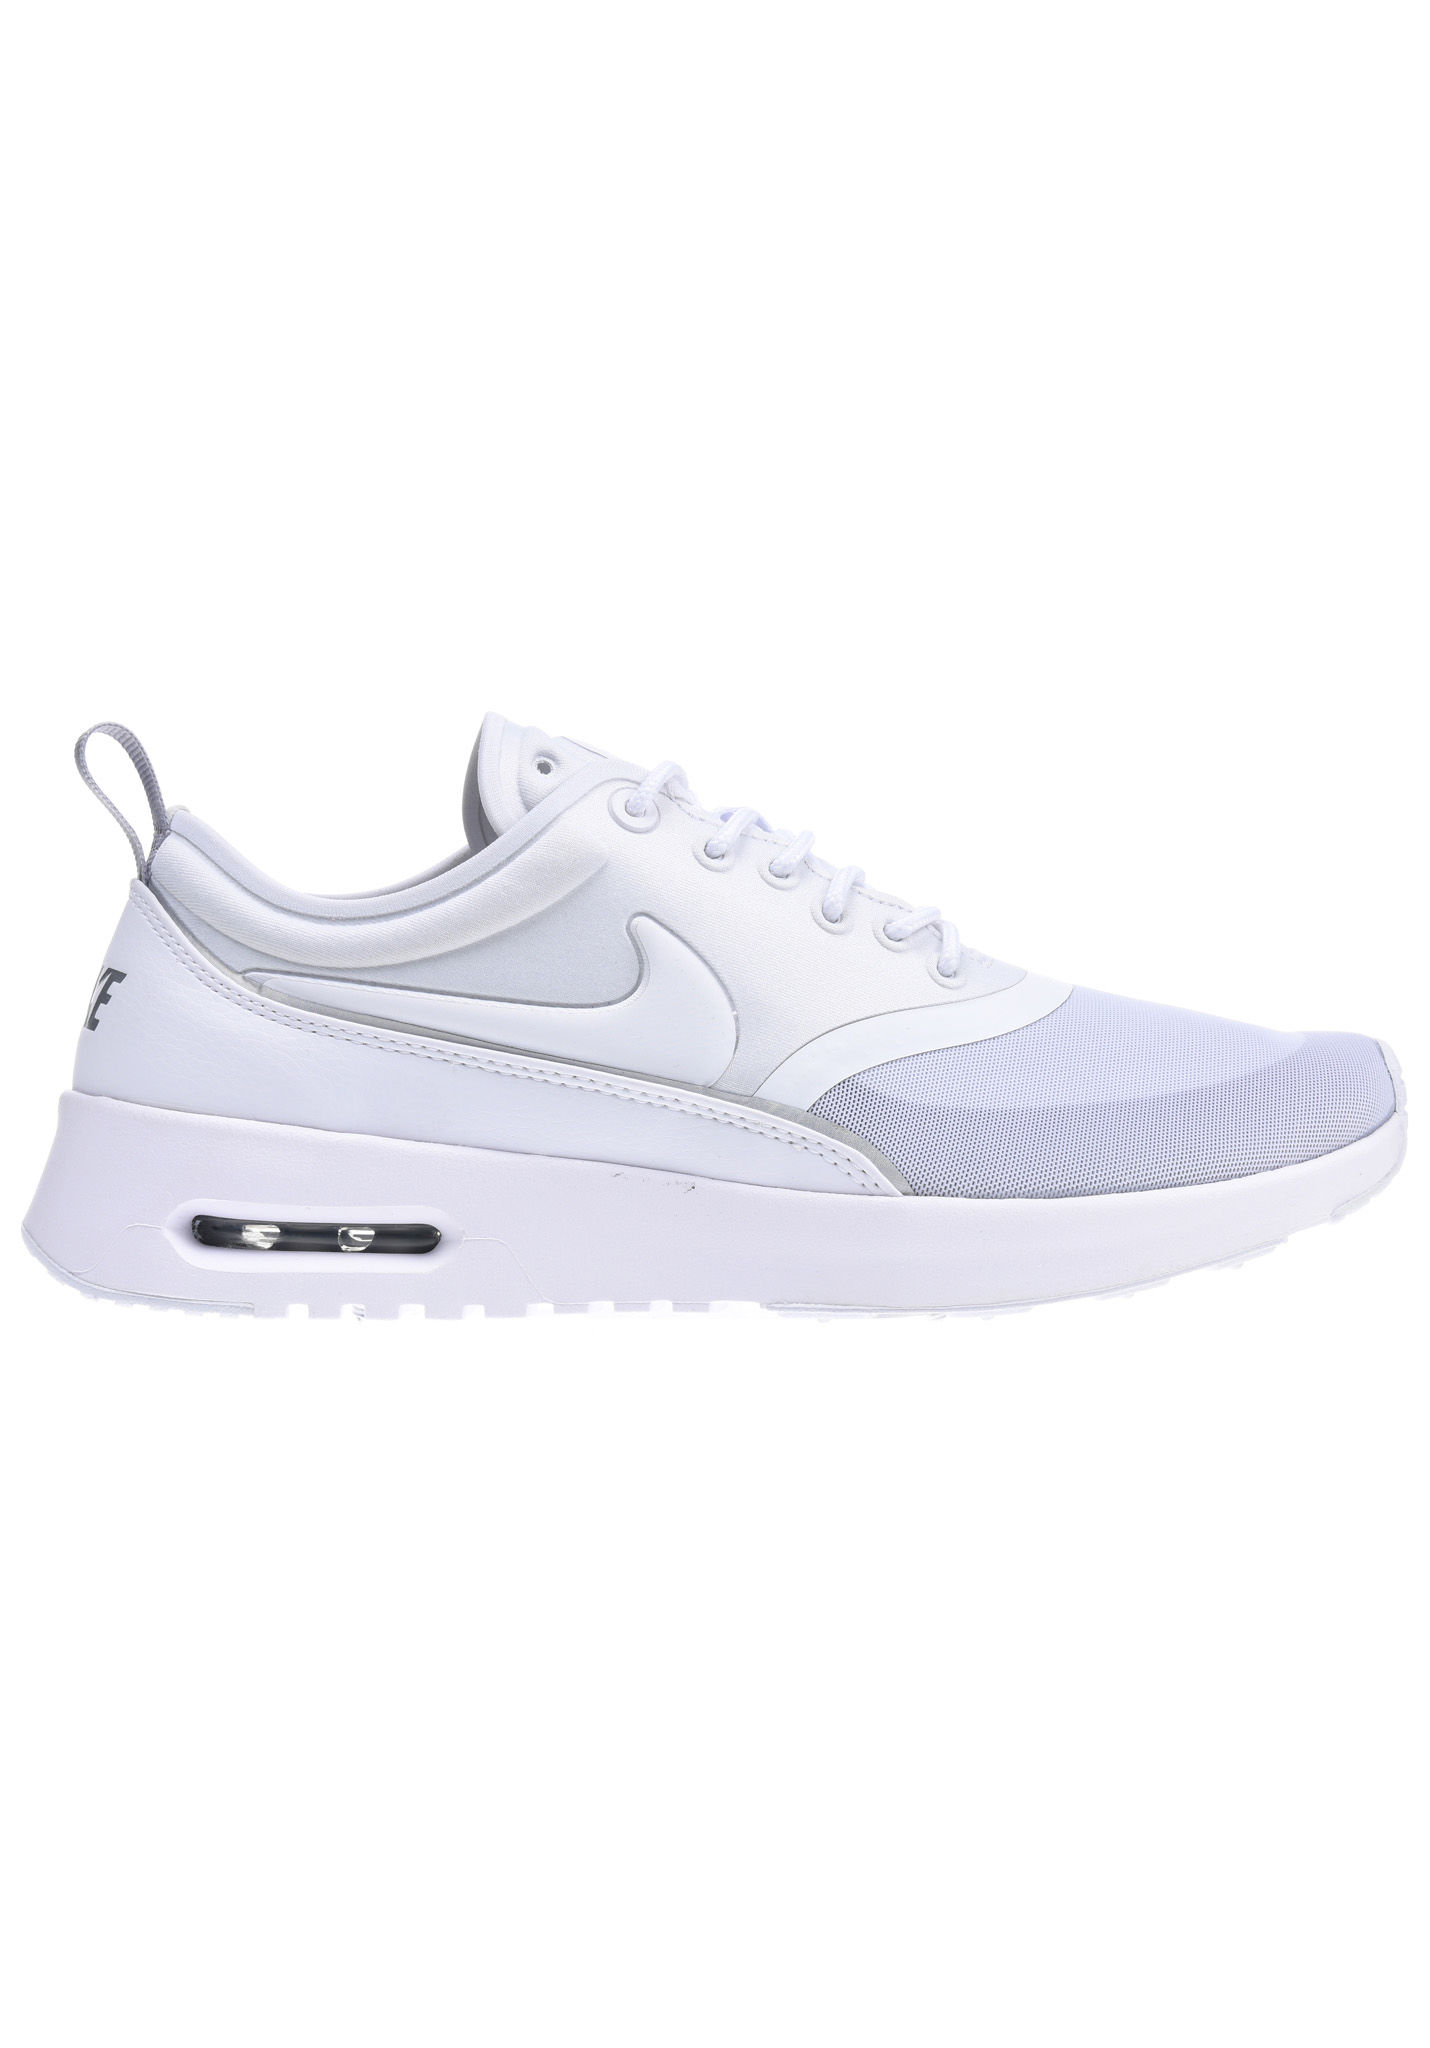 nike air max thea damen sneakers hellgrau grau. Black Bedroom Furniture Sets. Home Design Ideas